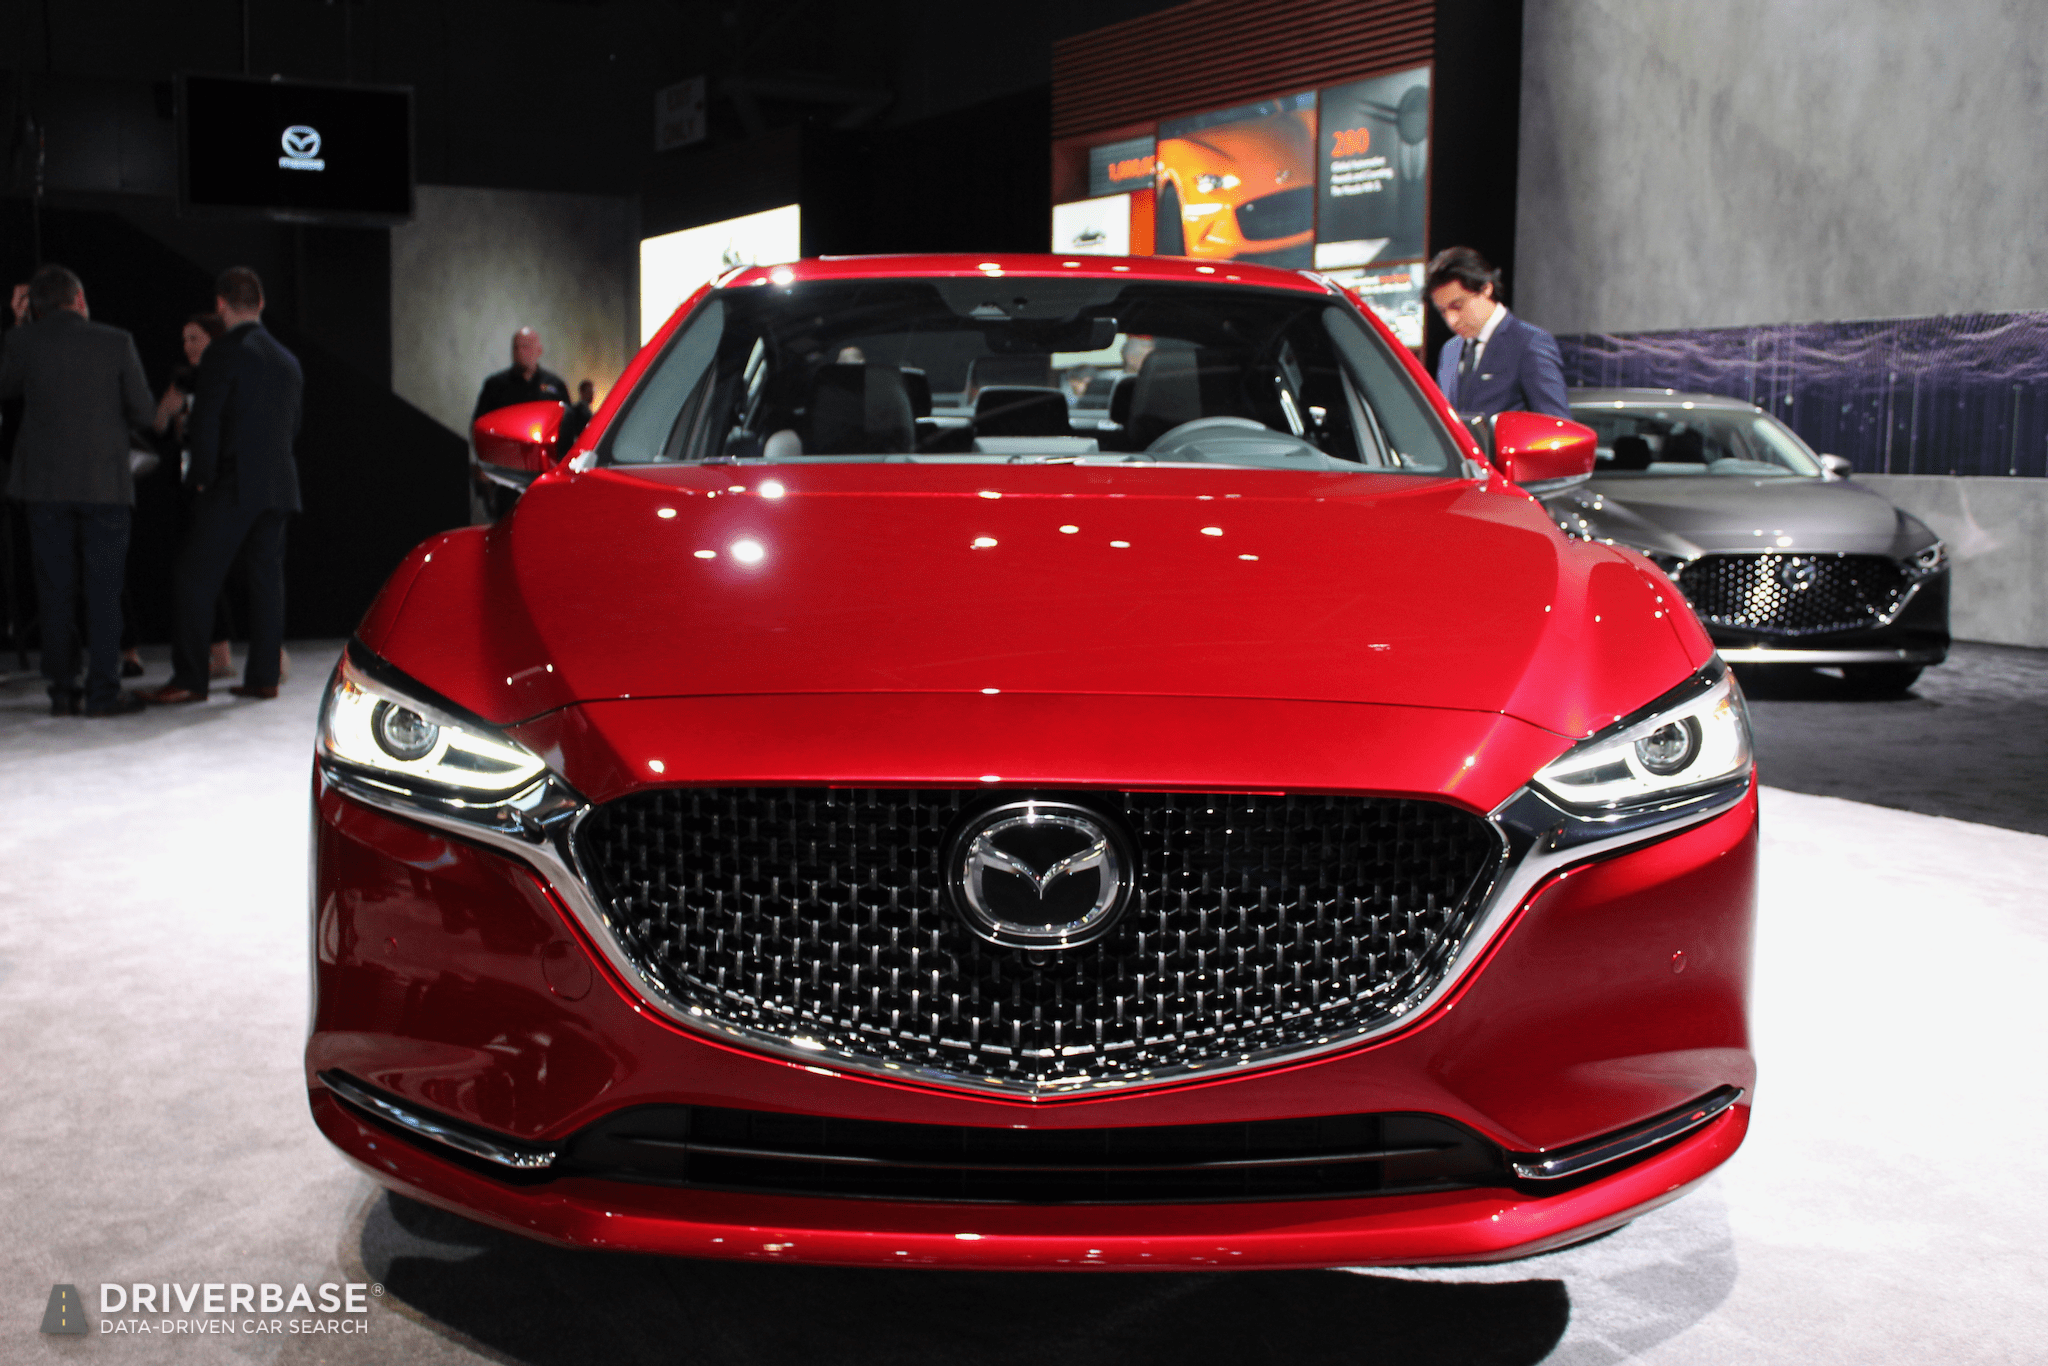 89 Great 2020 Mazda Vehicles Review by 2020 Mazda Vehicles